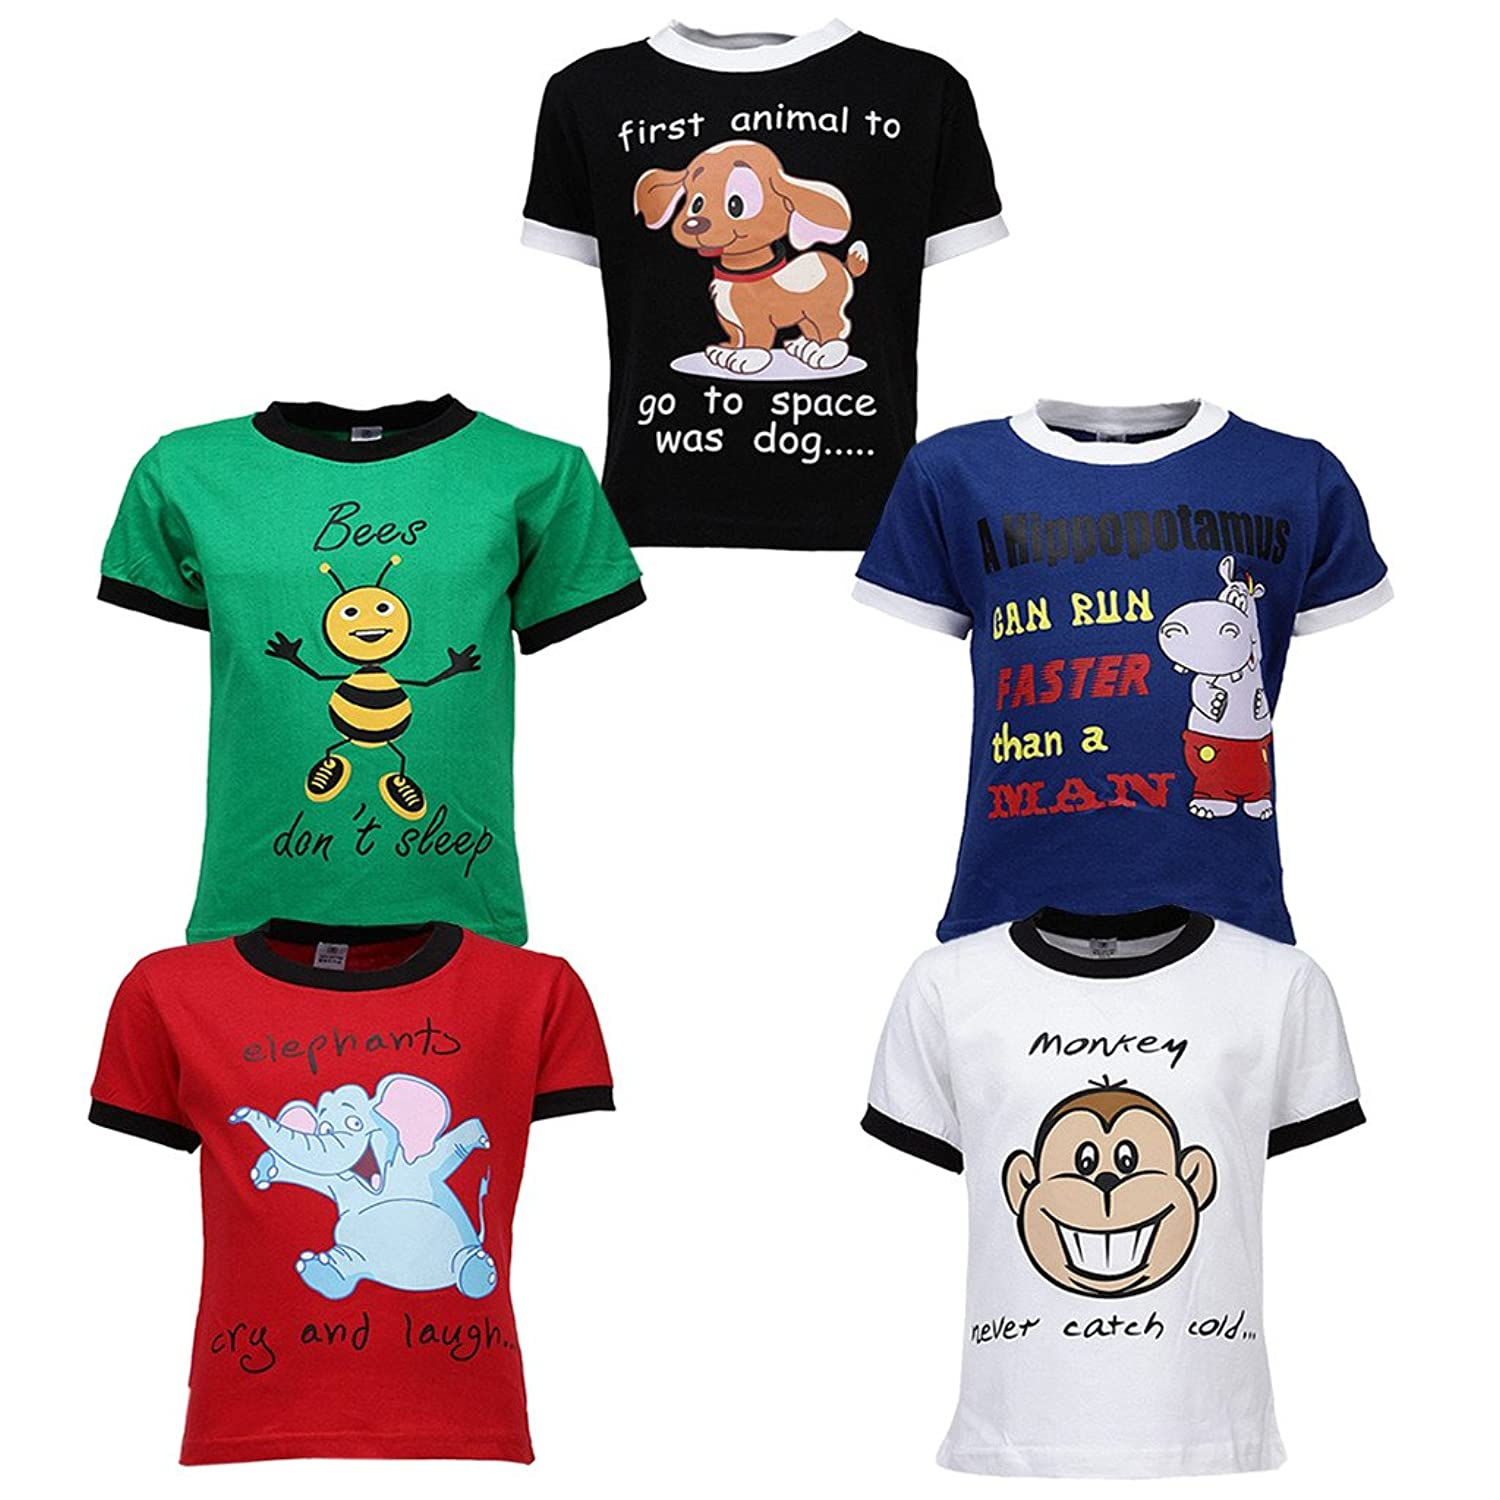 Design your own t shirt india cash on delivery - Goodway Boys Pack Of 5 Theme Did You Knowtheme Printed T Shirts